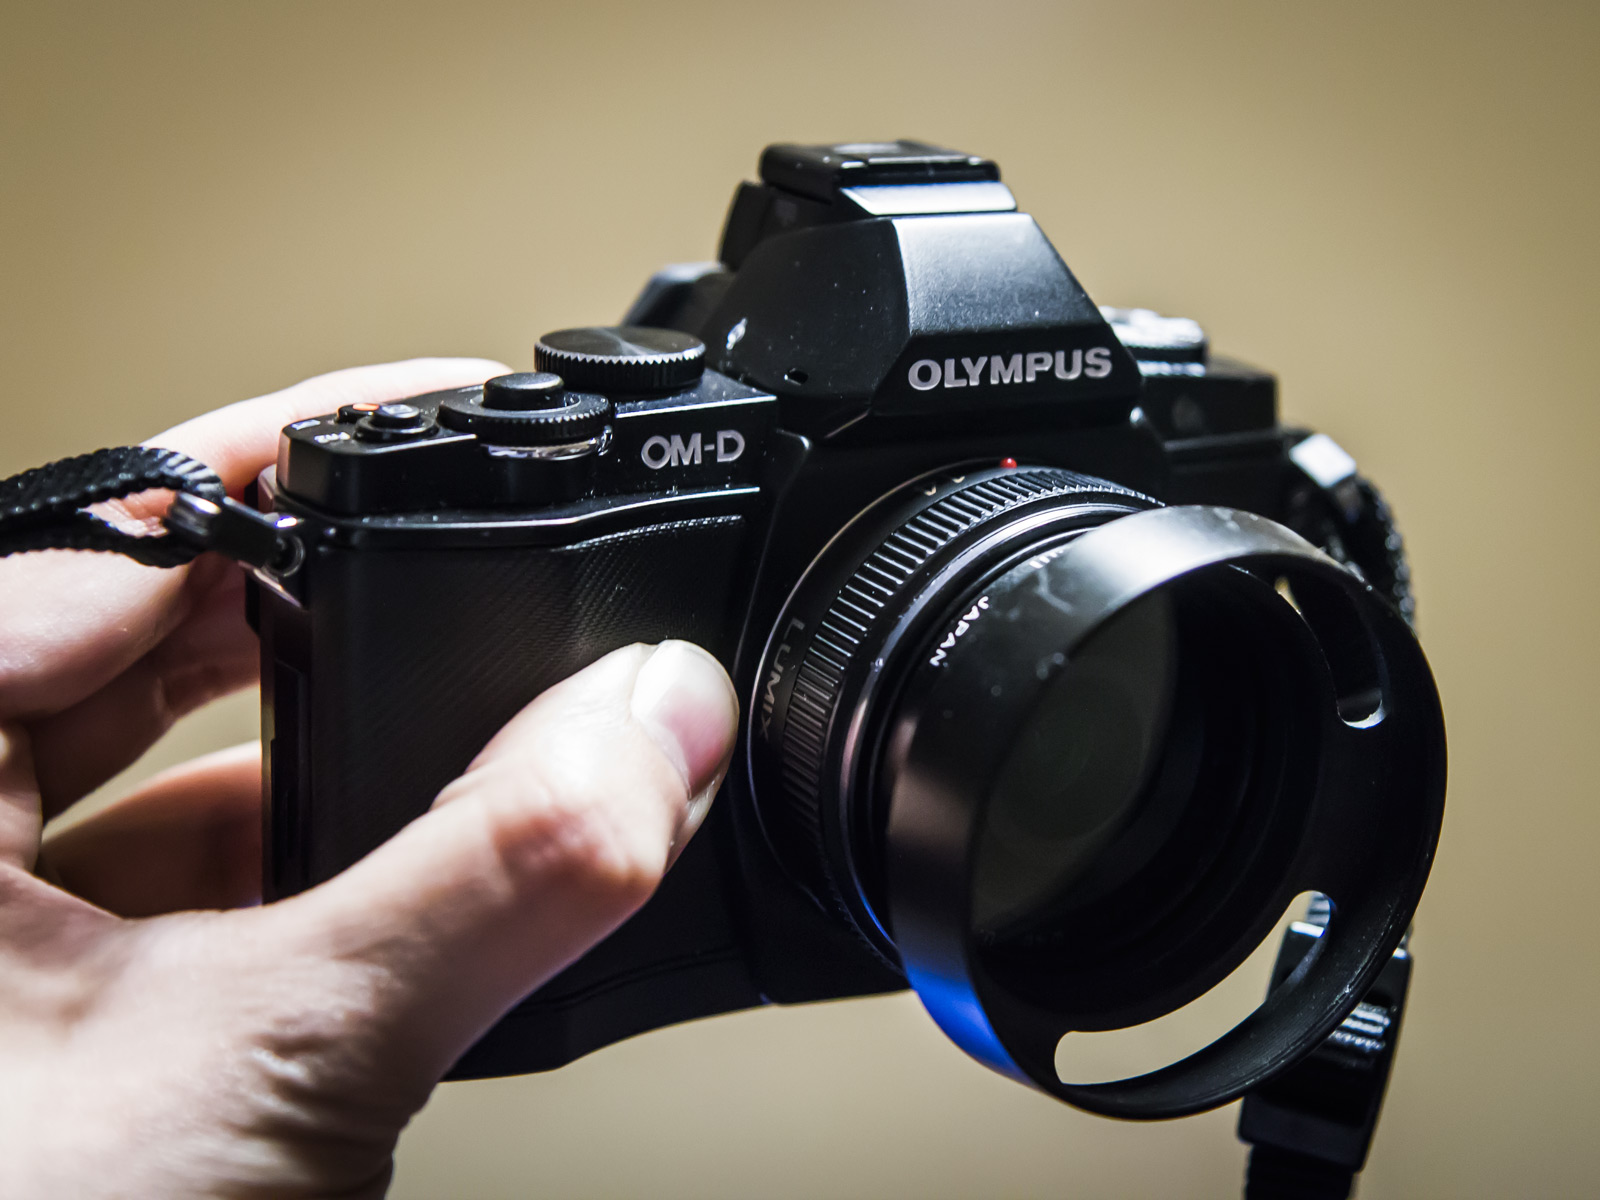 The Olympus OM-D E-M5 with Panasonic 14mm f/2.5 lens